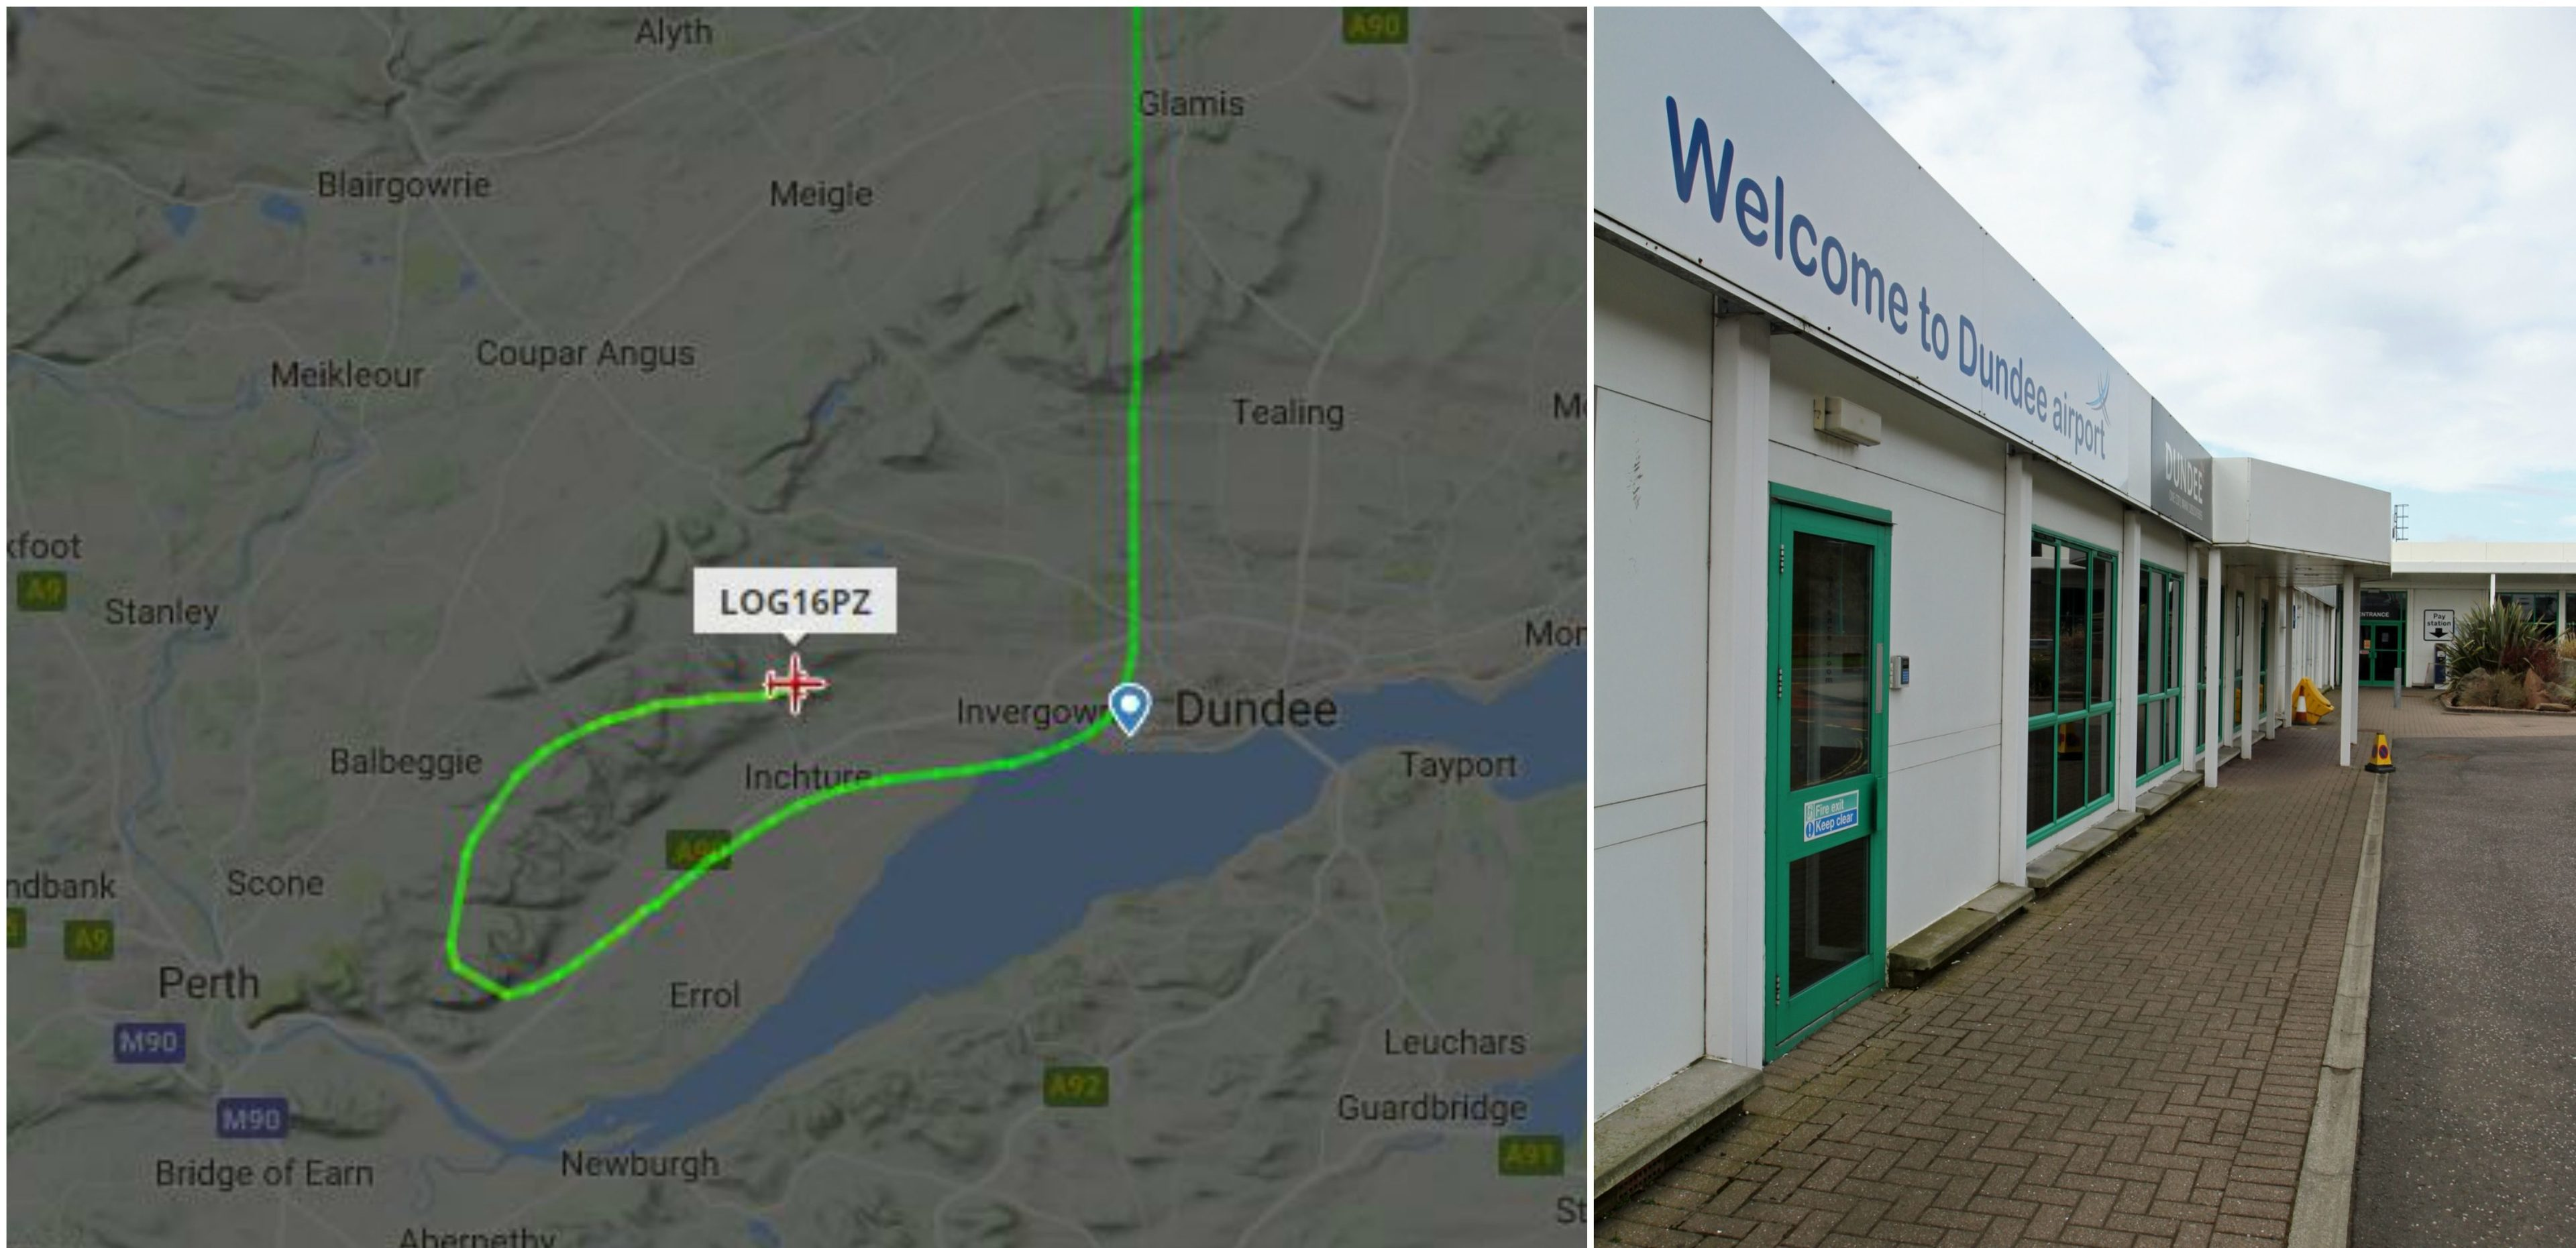 The flightradar24 map of the plane's route/Dundee Airport.